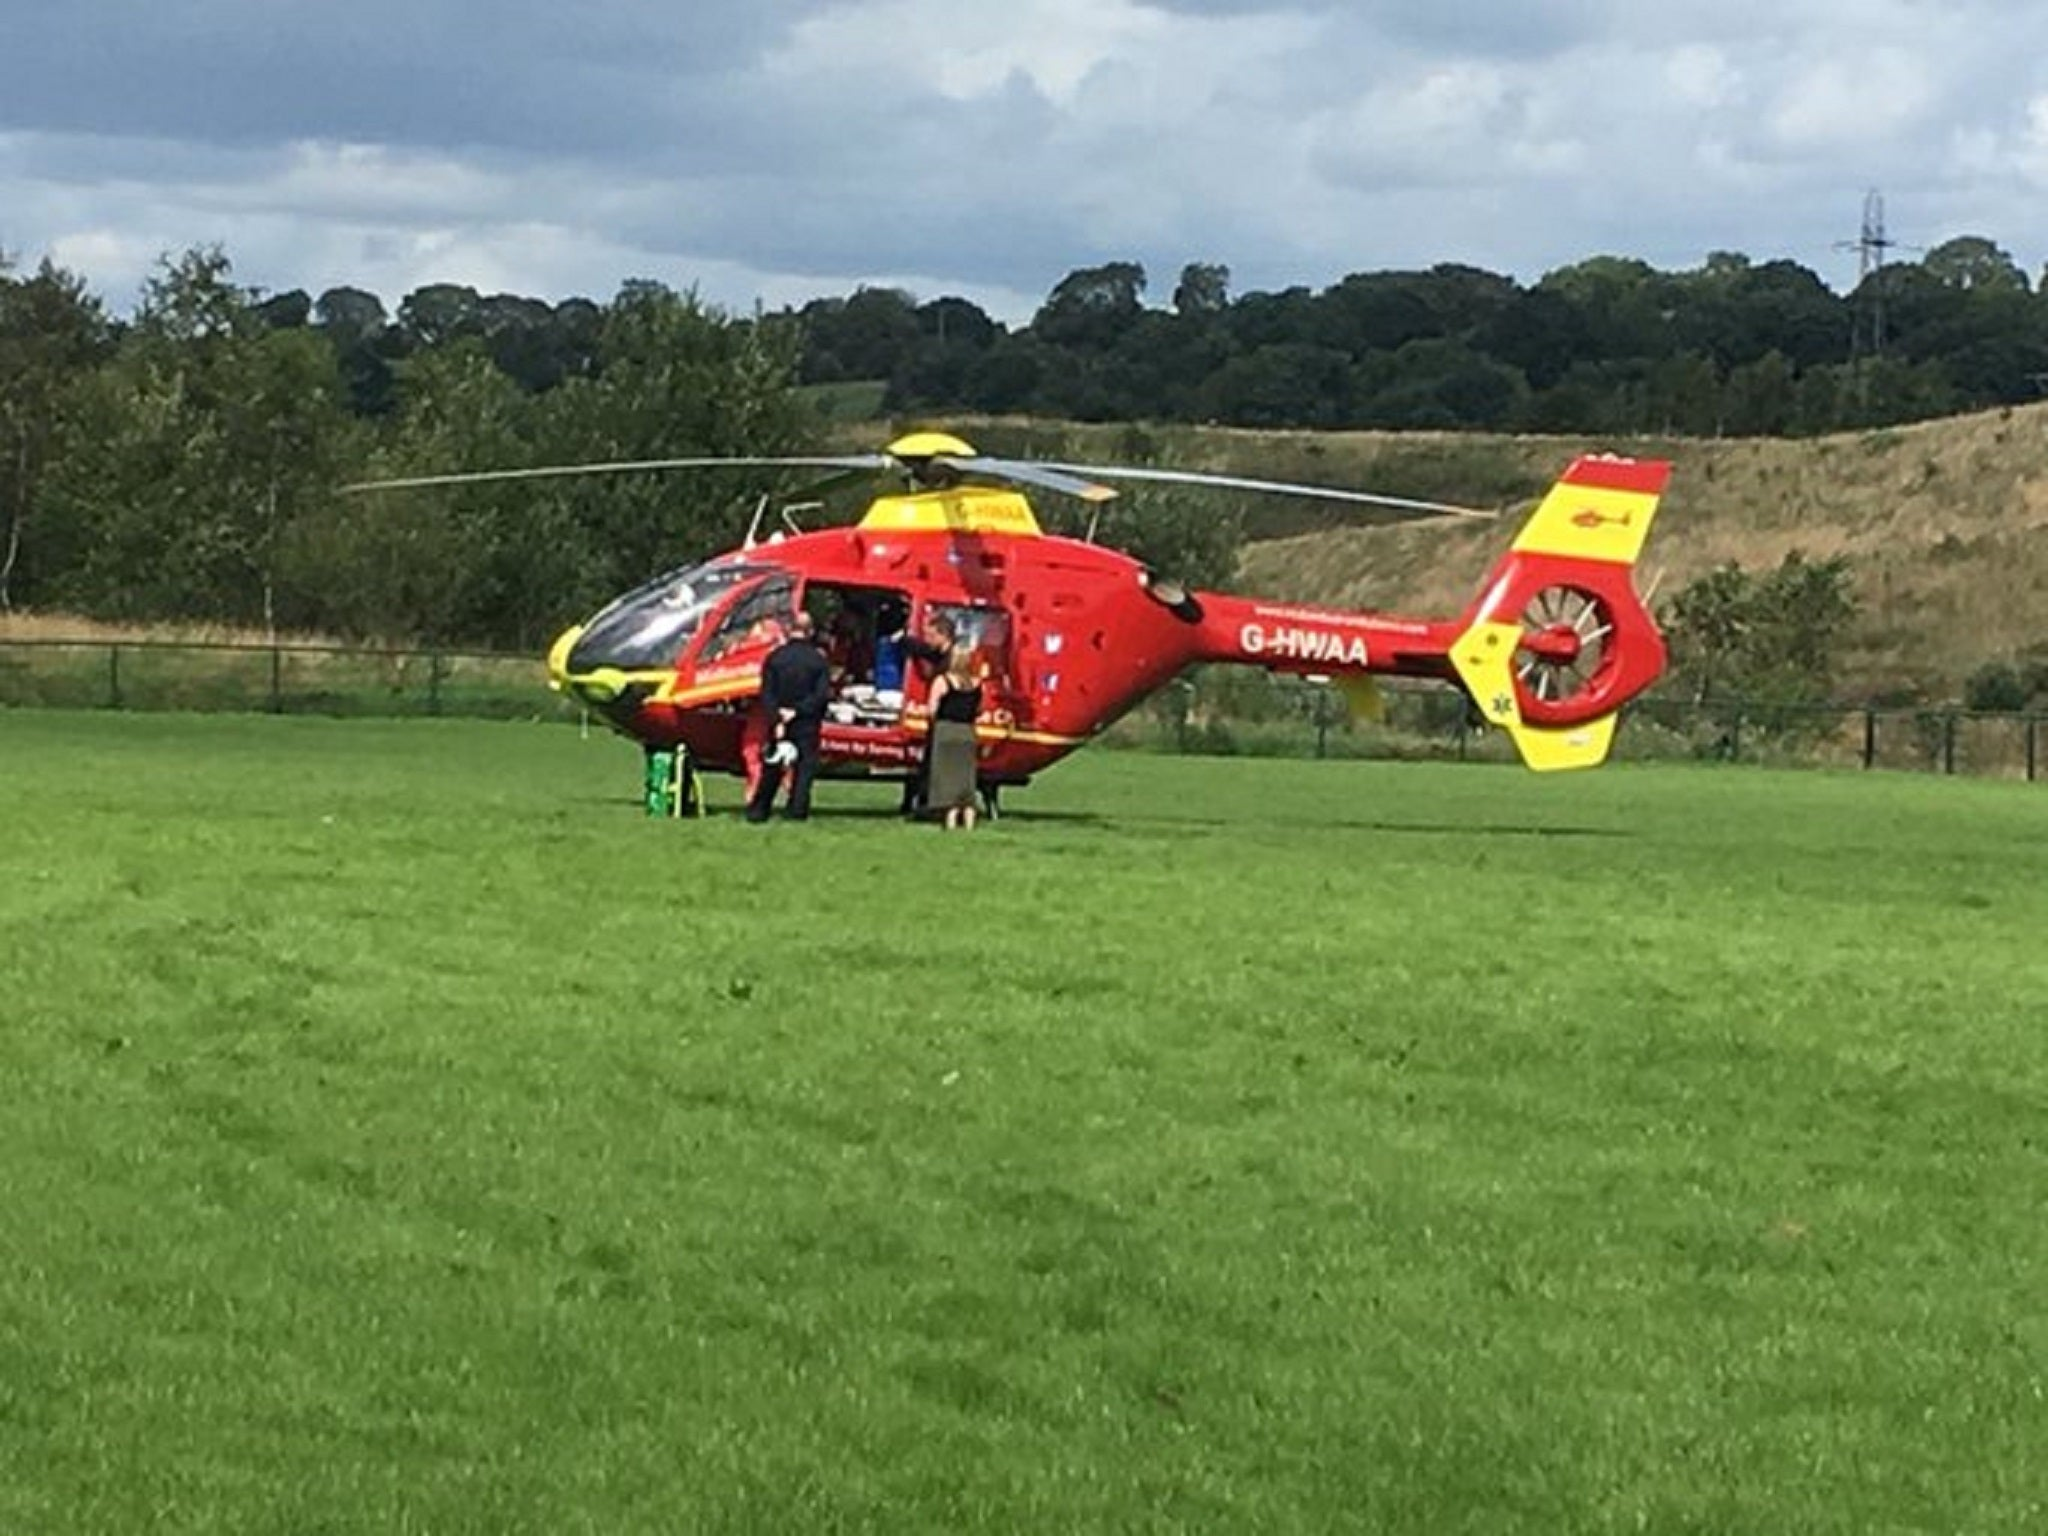 Boy impaled in neck by football training pole airlifted to hospital